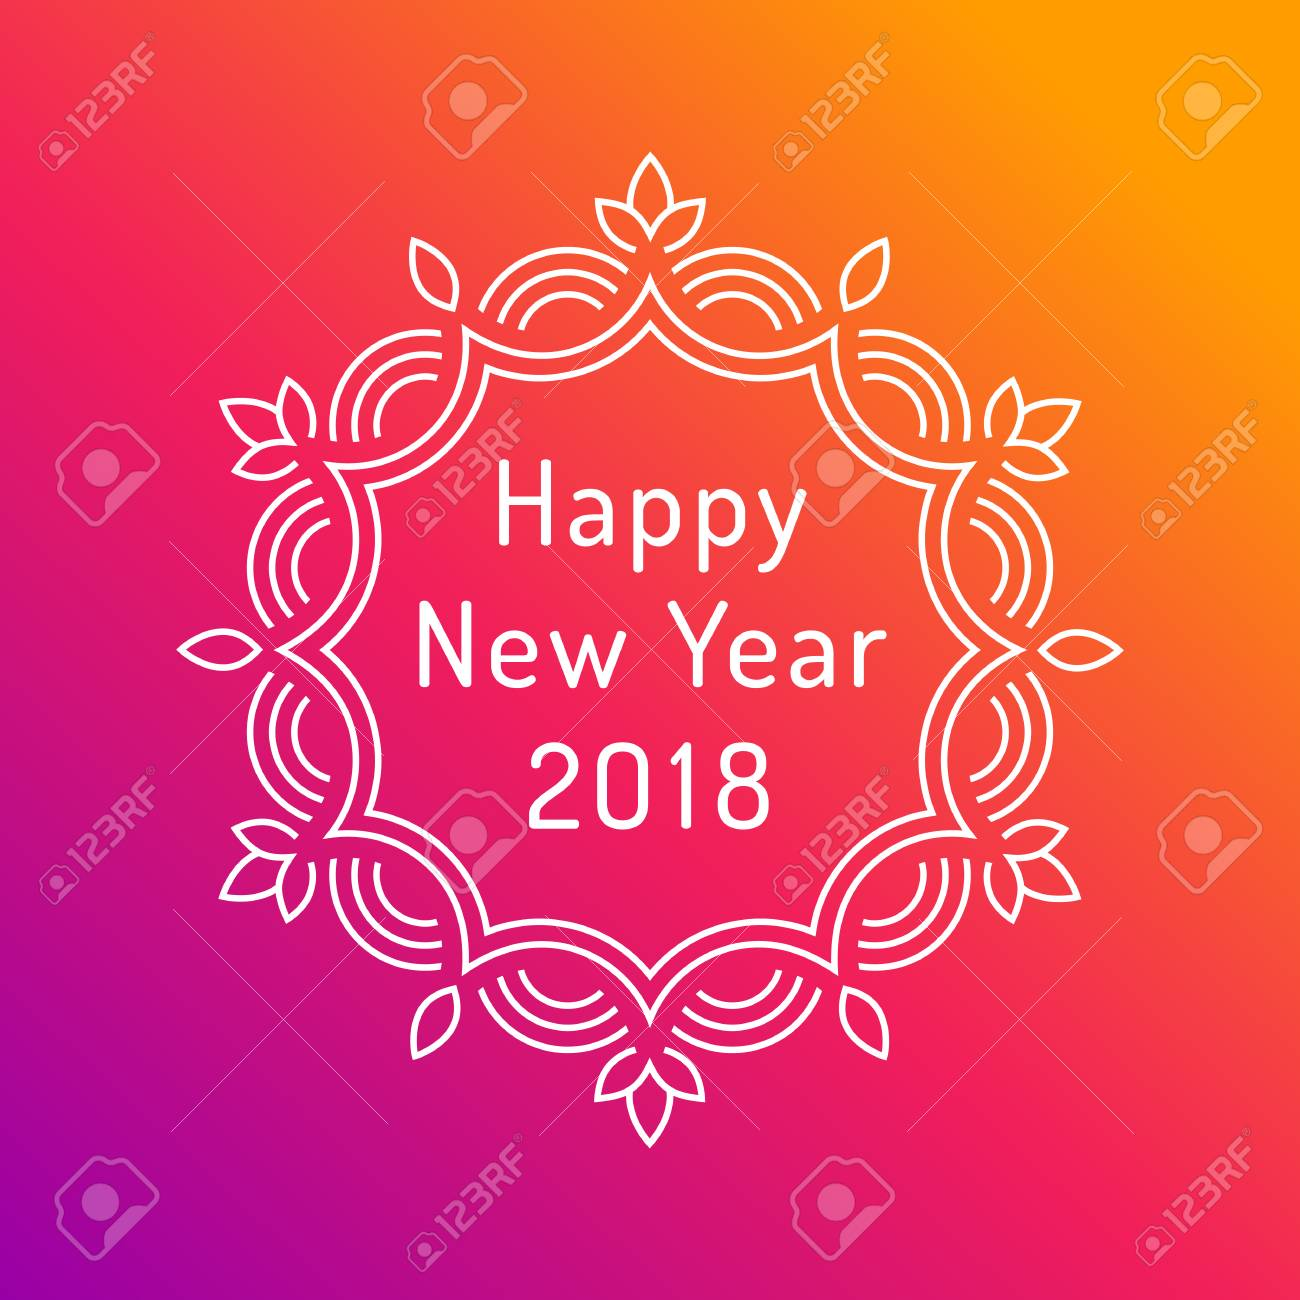 Happy new year 2018 greeting card design royalty free cliparts happy new year 2018 greeting card design stock vector 89830928 m4hsunfo